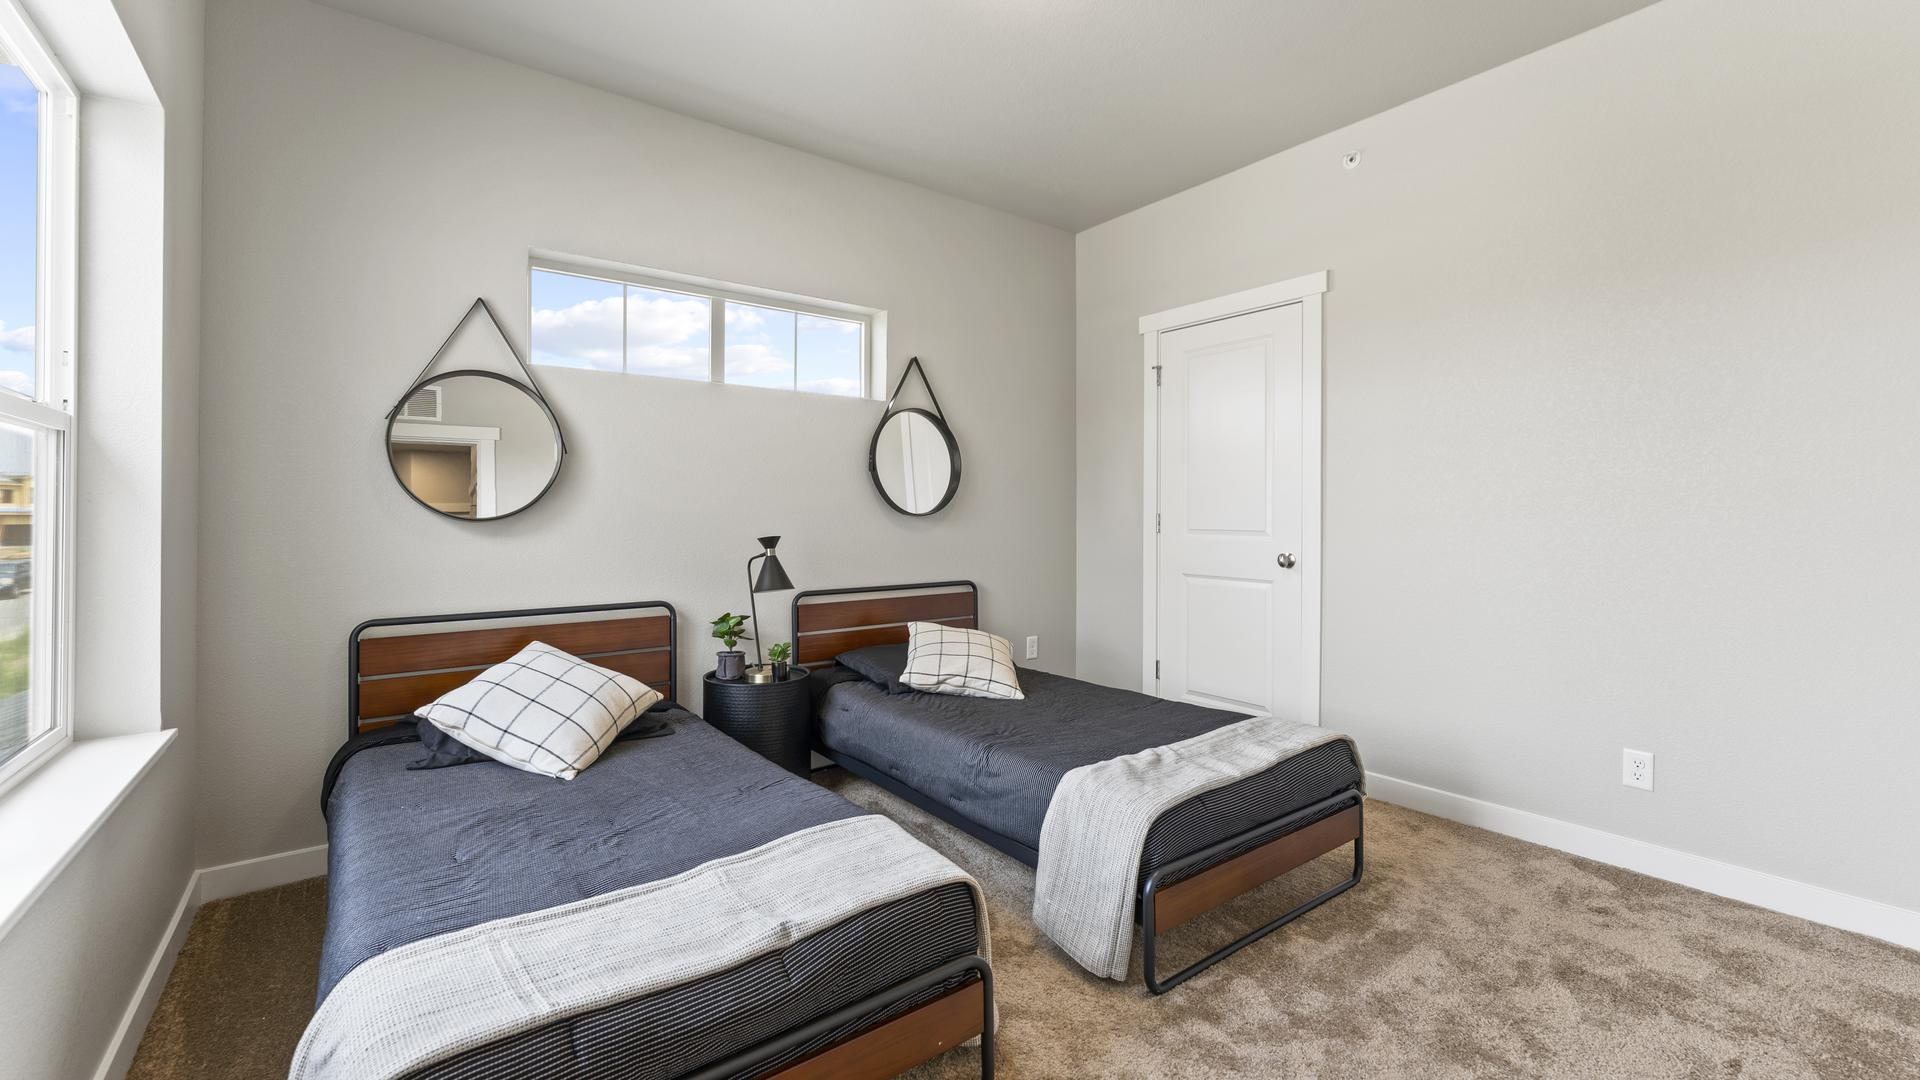 Bedroom 3 - Not Actual Home - Finishes Will Vary